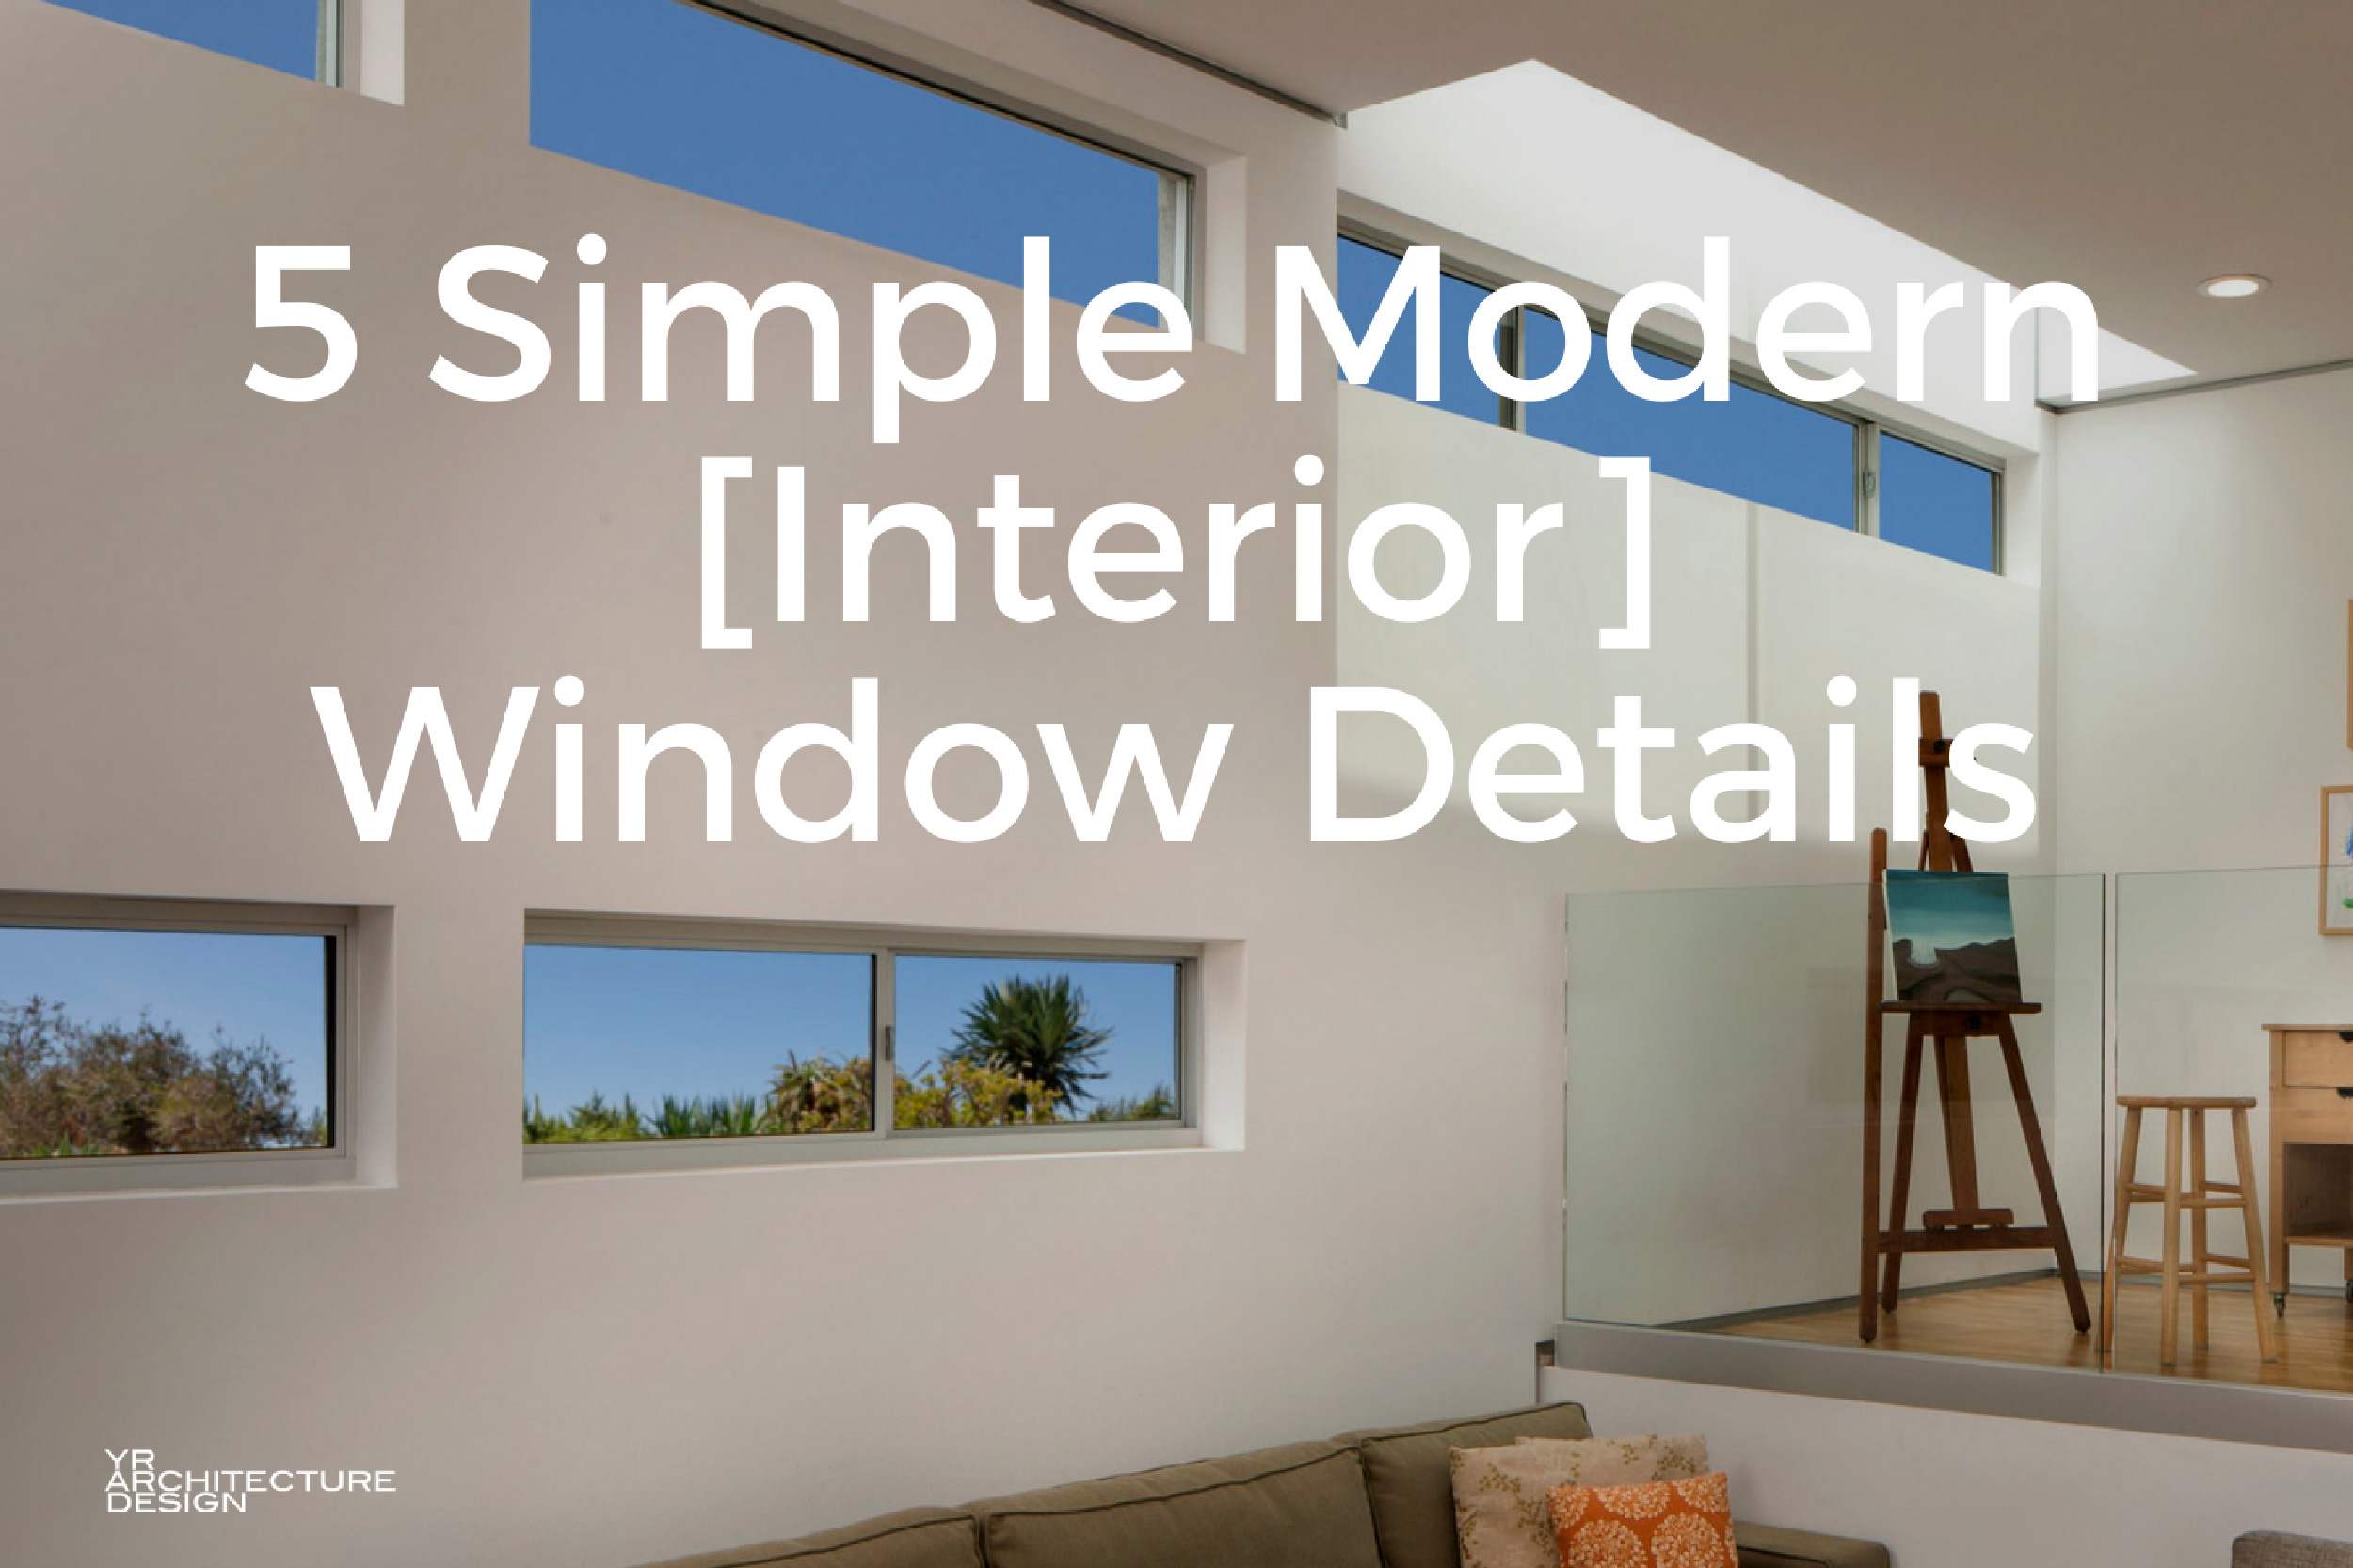 Simple modern roof designs for Mid century modern interior window trim